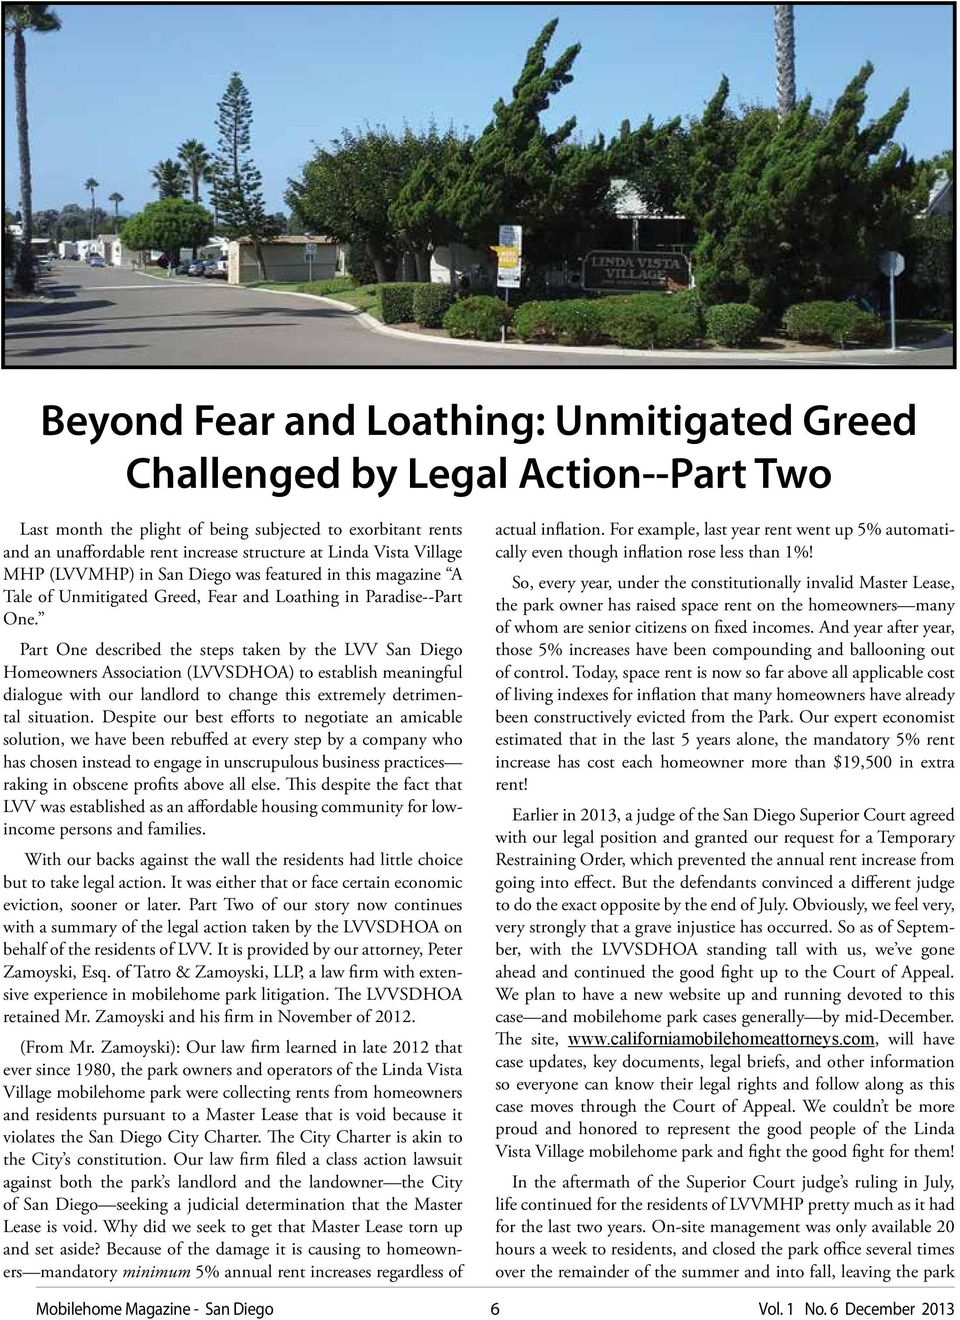 Part One described the steps taken by the LVV San Diego Homeowners Association (LVVSDHOA) to establish meaningful dialogue with our landlord to change this extremely detrimental situation.